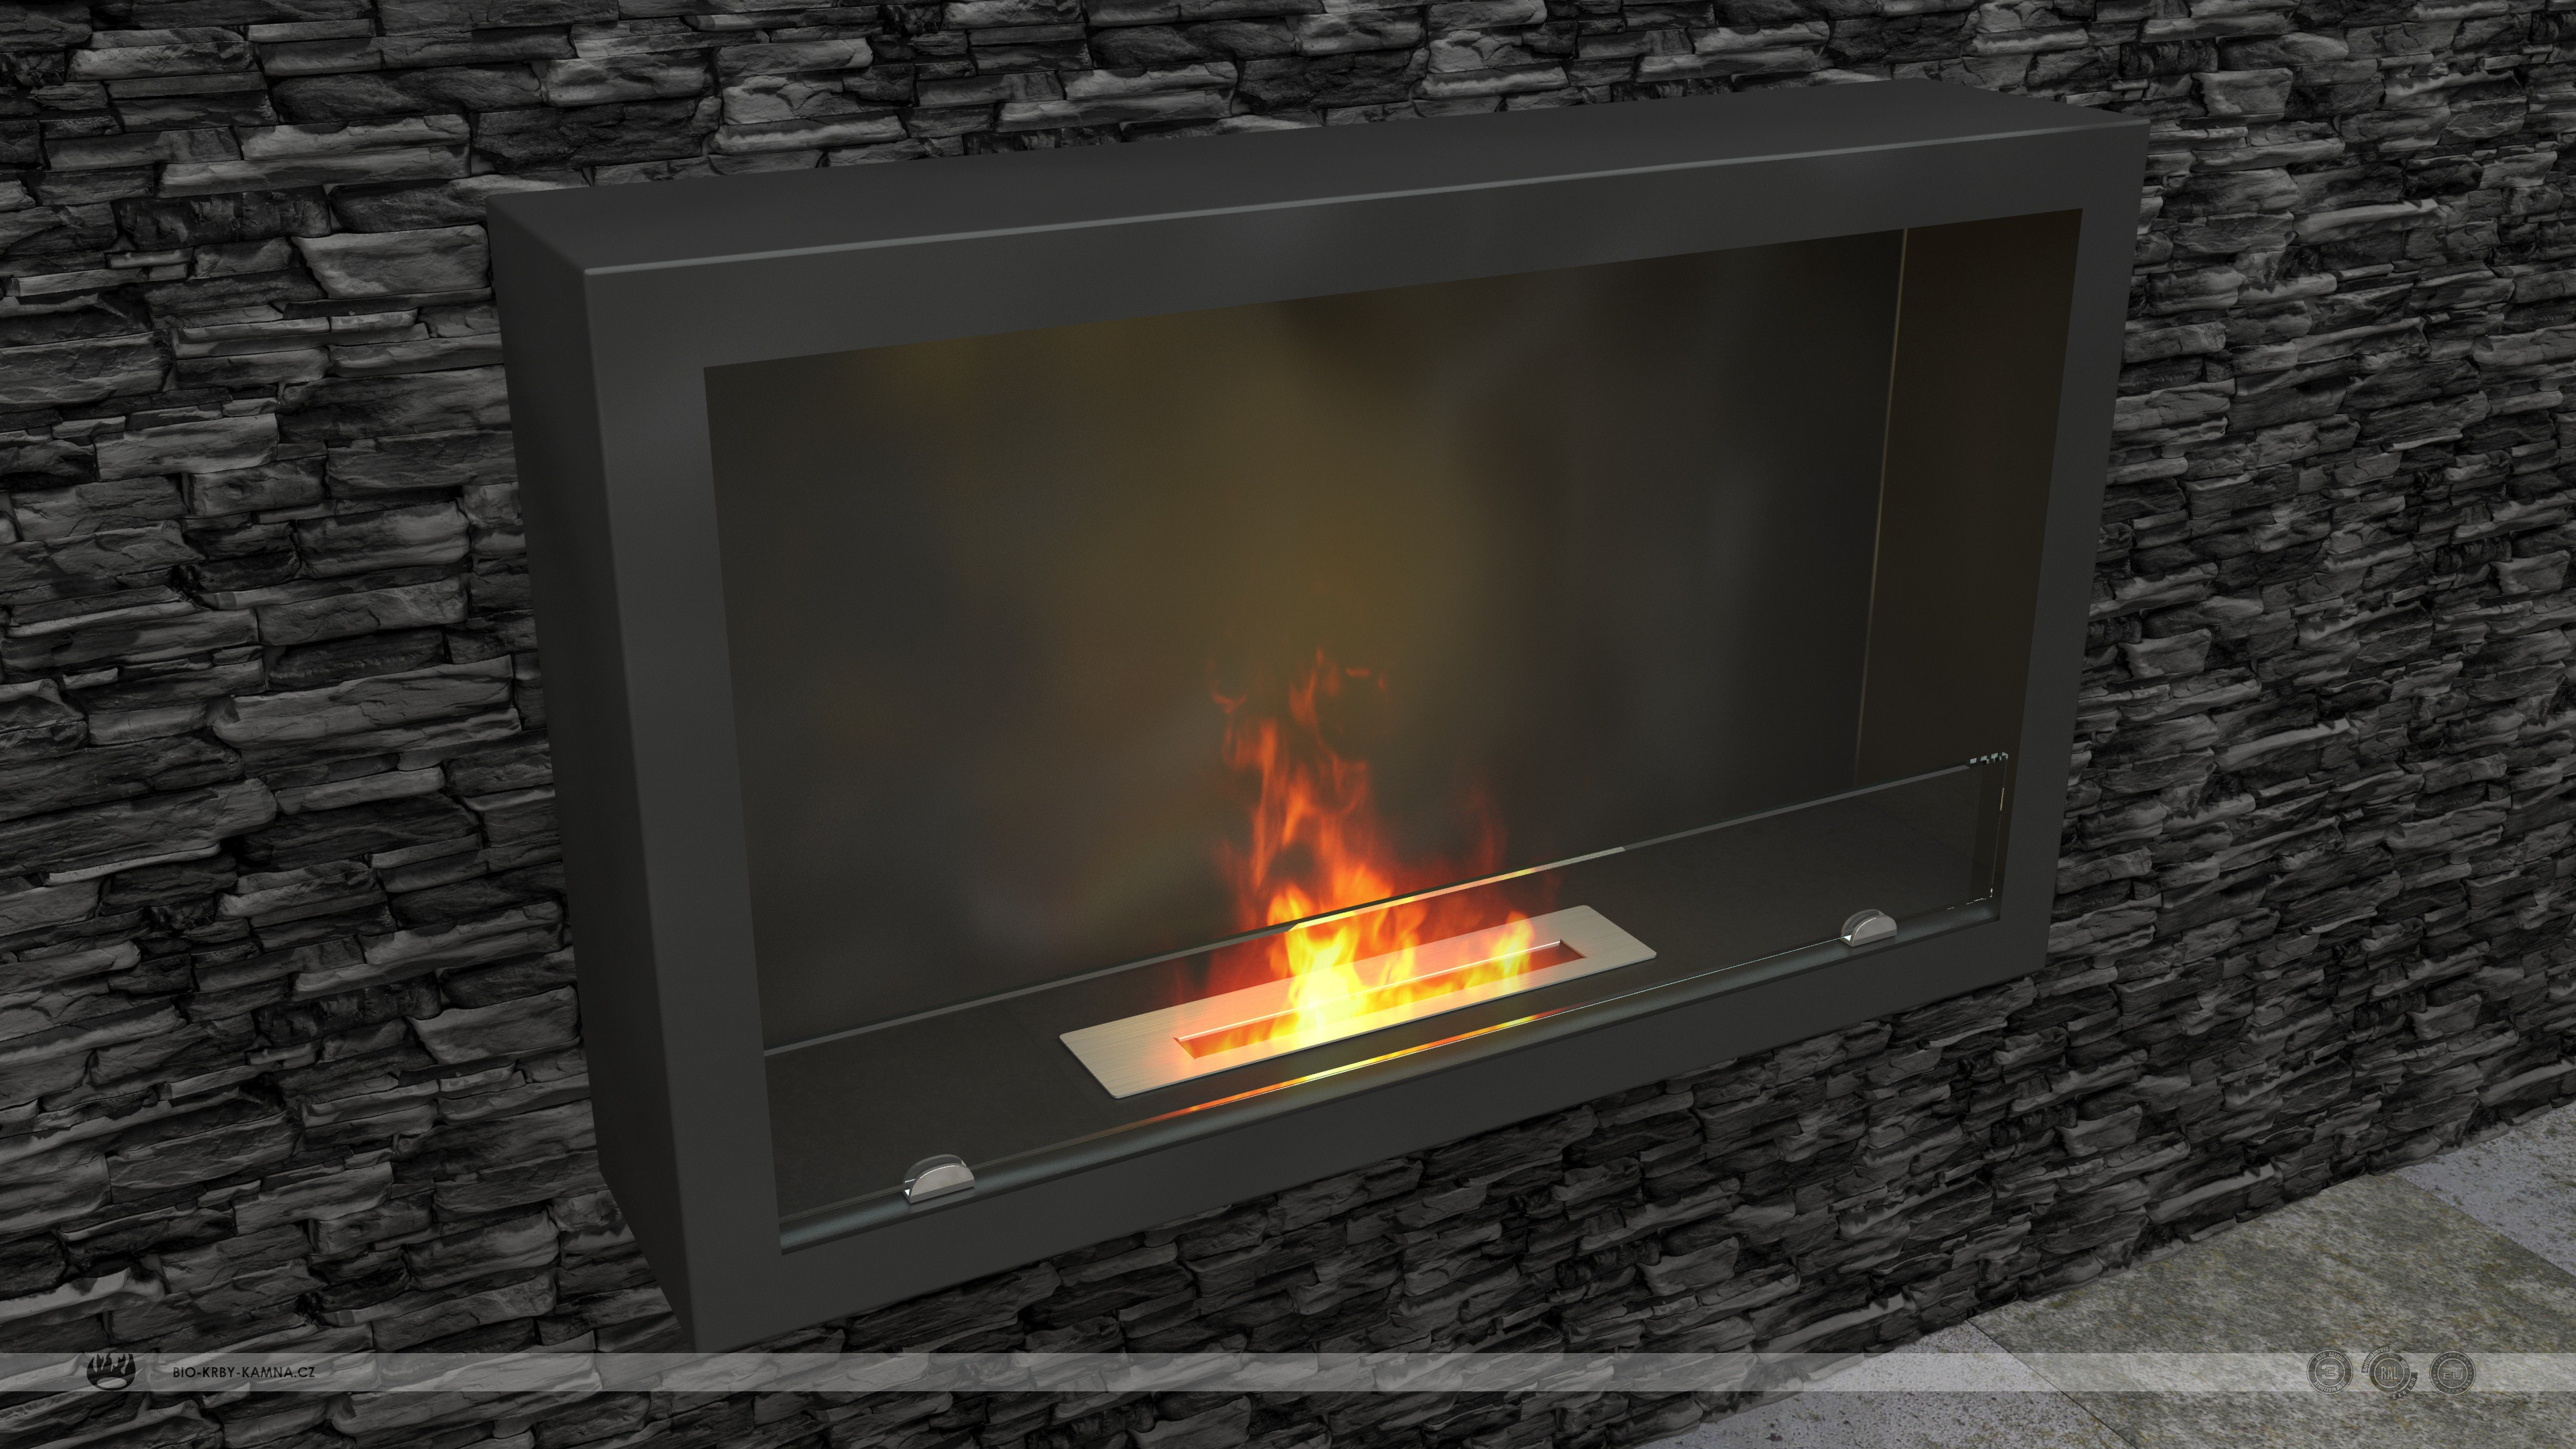 Fireplace without chimney AF-61 + Burner 370